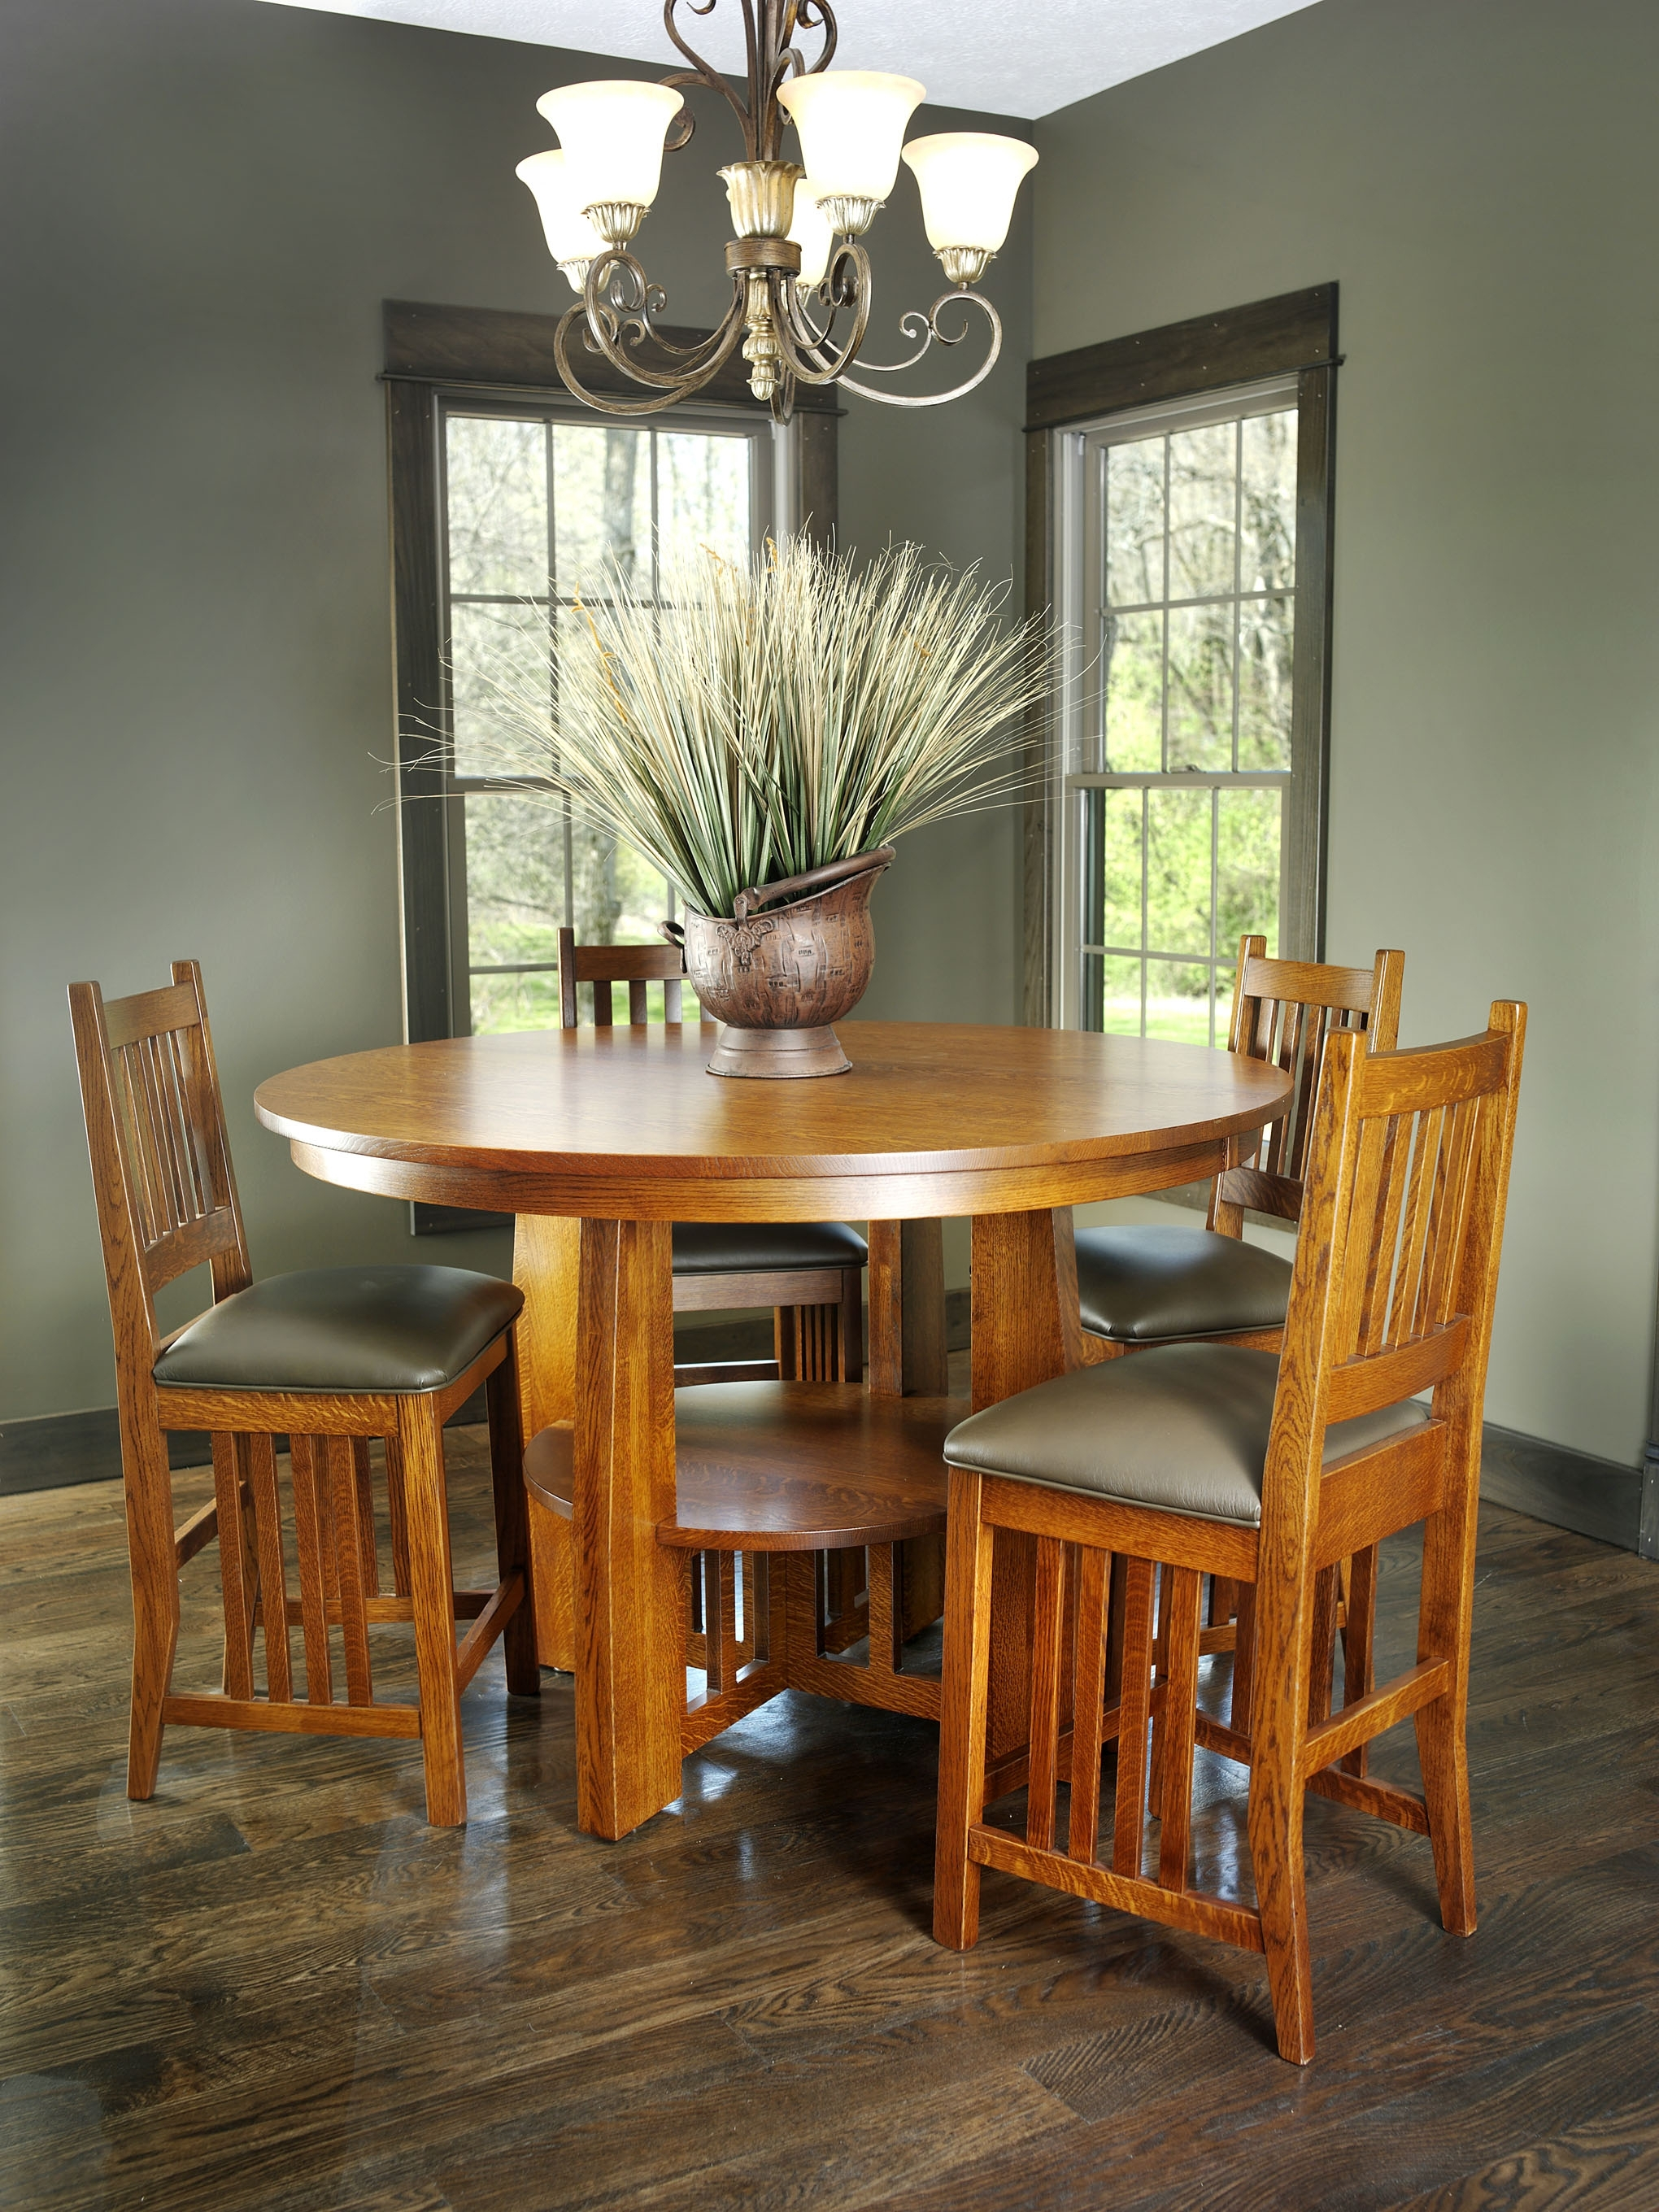 Patterson Furniture Company – Quality American Made Furniture For For Most Current Patterson 6 Piece Dining Sets (Image 16 of 20)